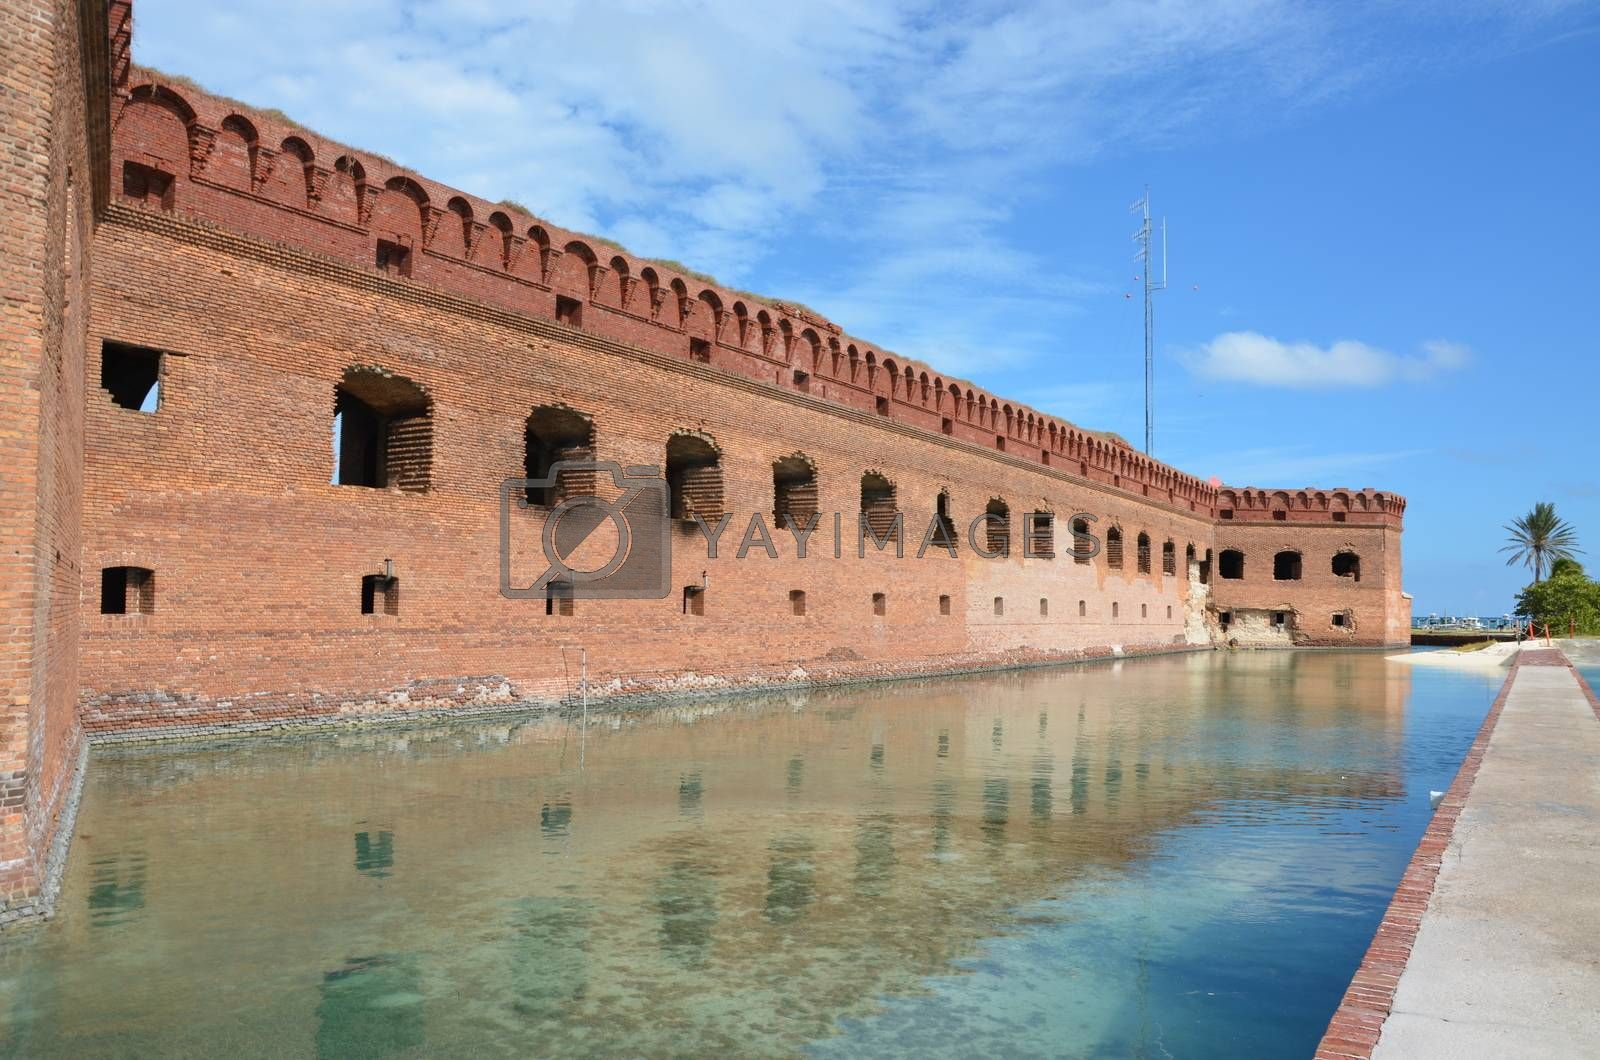 fort Jefferson wall. This is an old fort located on the island of Dry. Tortugas. This is off the coast of Florida.It served as fort and prison during the Civil War.